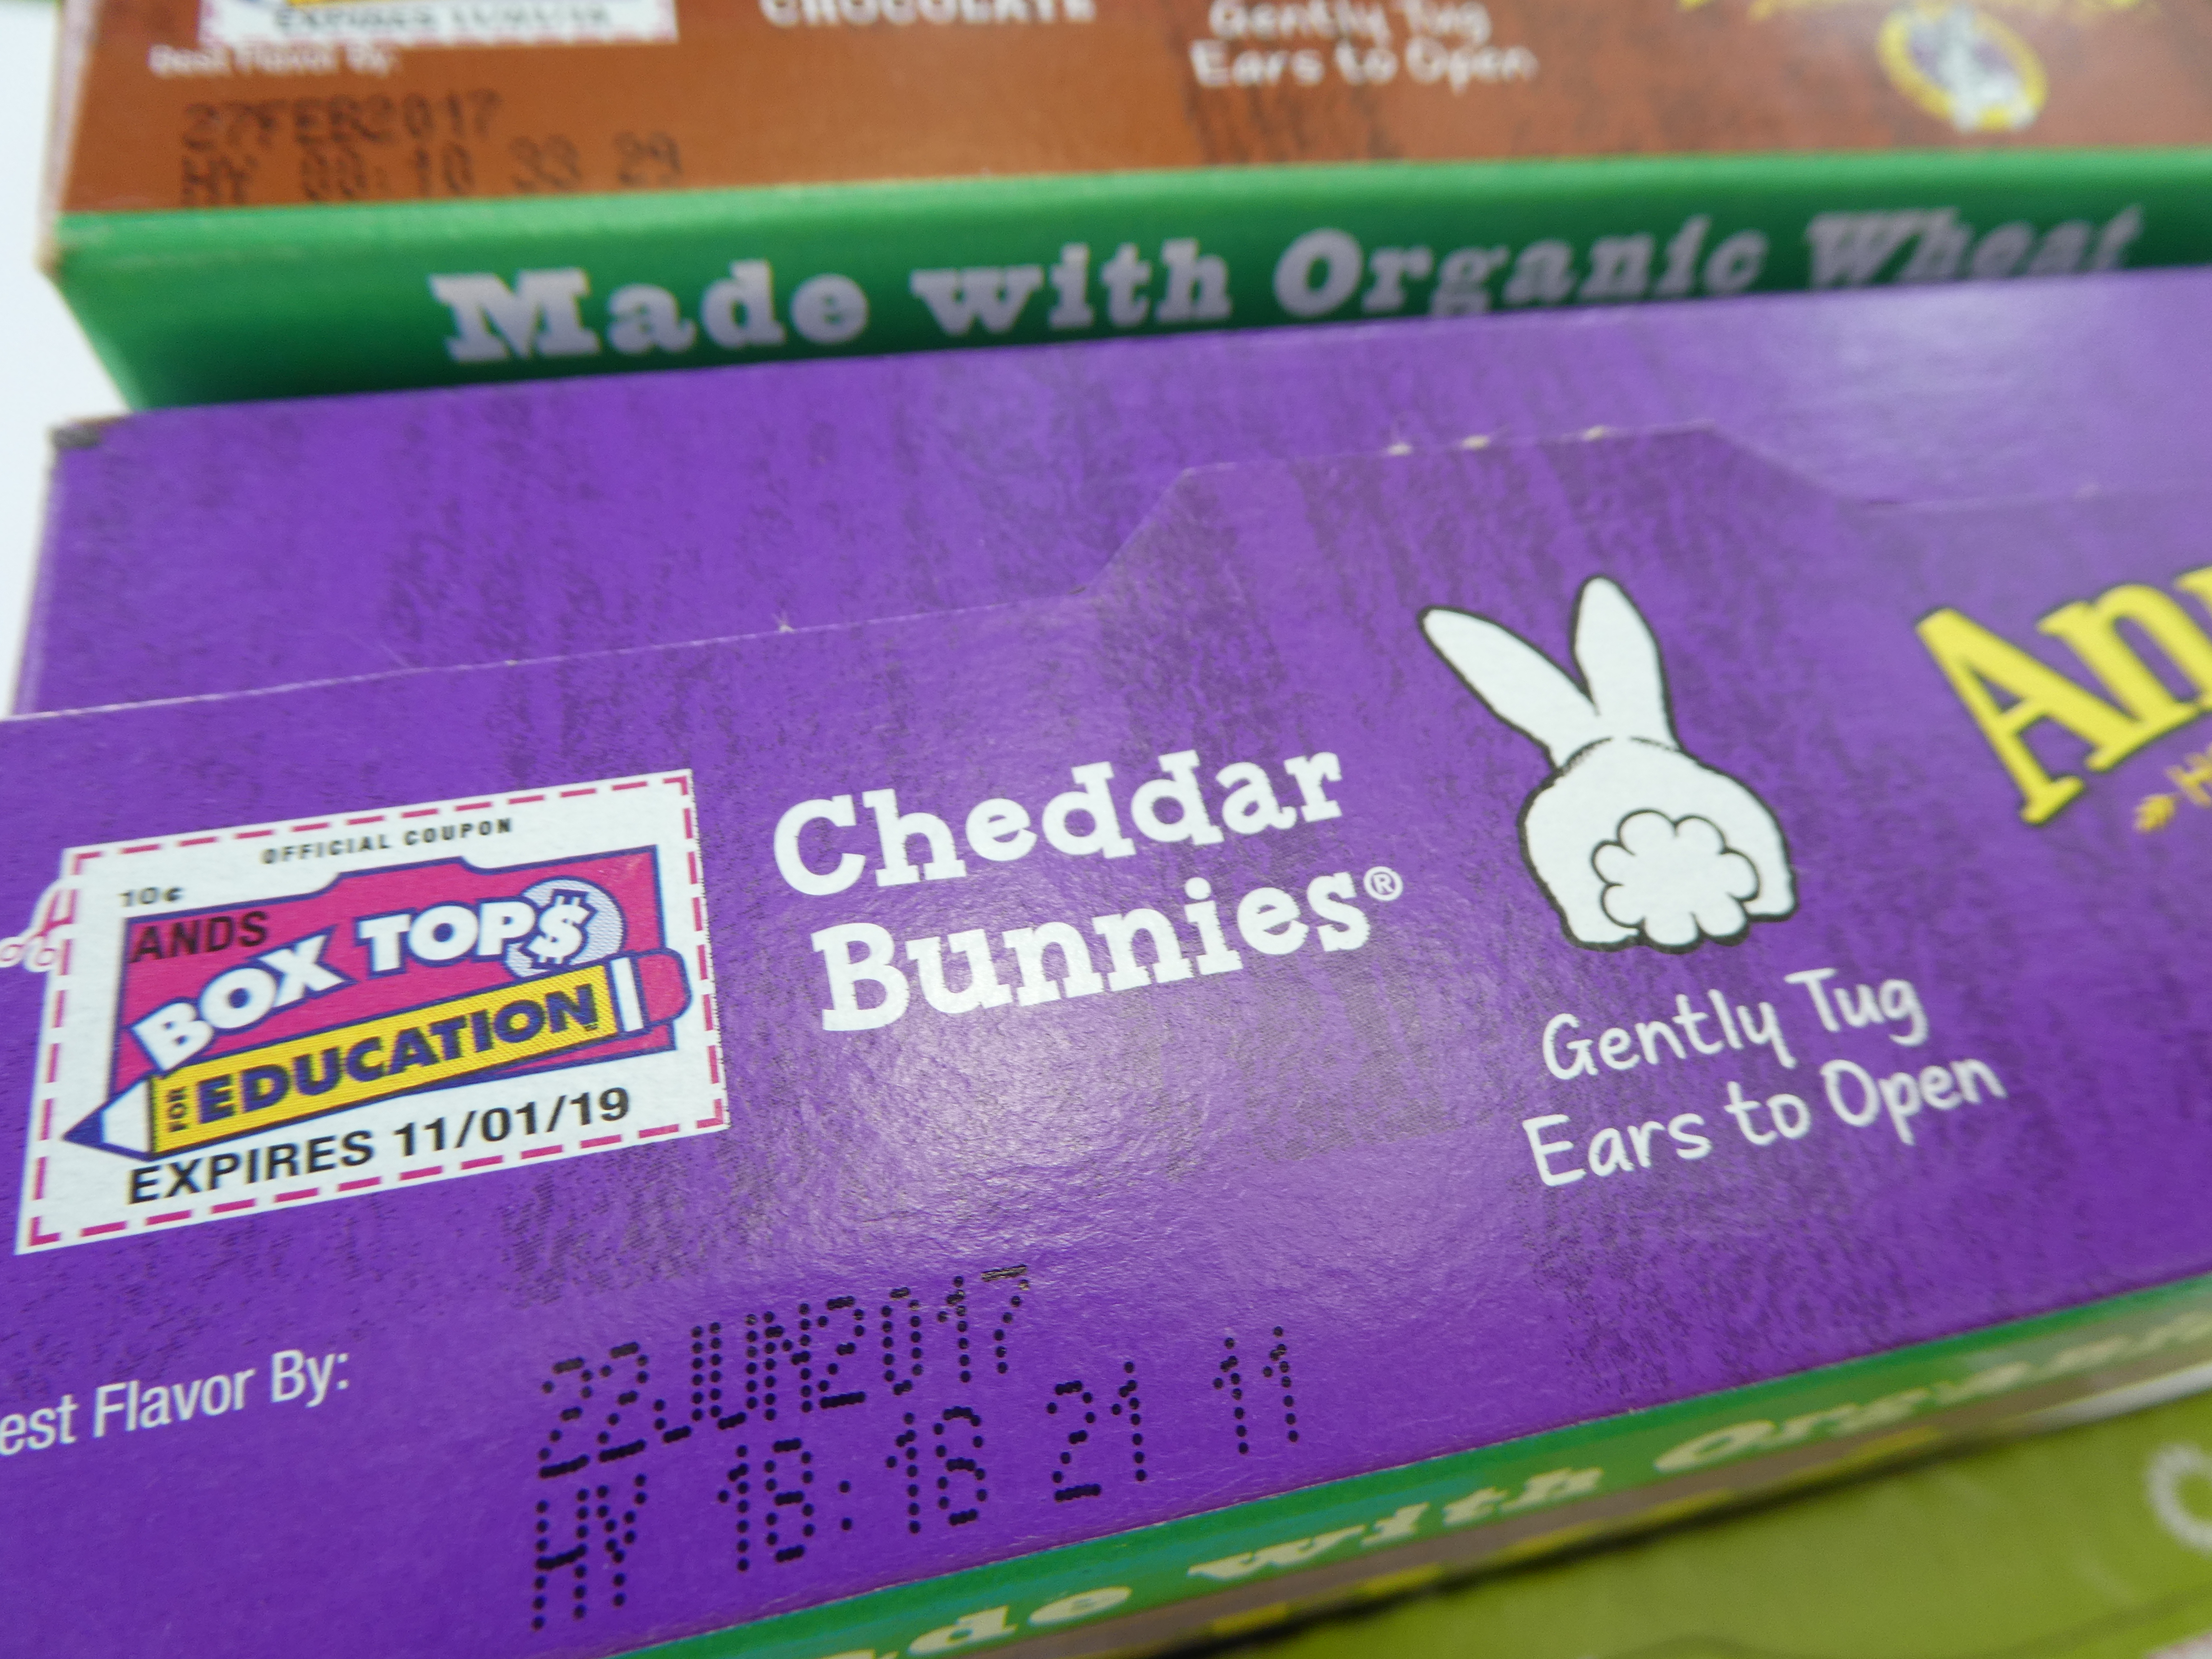 School Lunch Ideas- Box Tops & 5 Stress-free School Lunch Ideas - R We There Yet Mom? Aboutintivar.Com